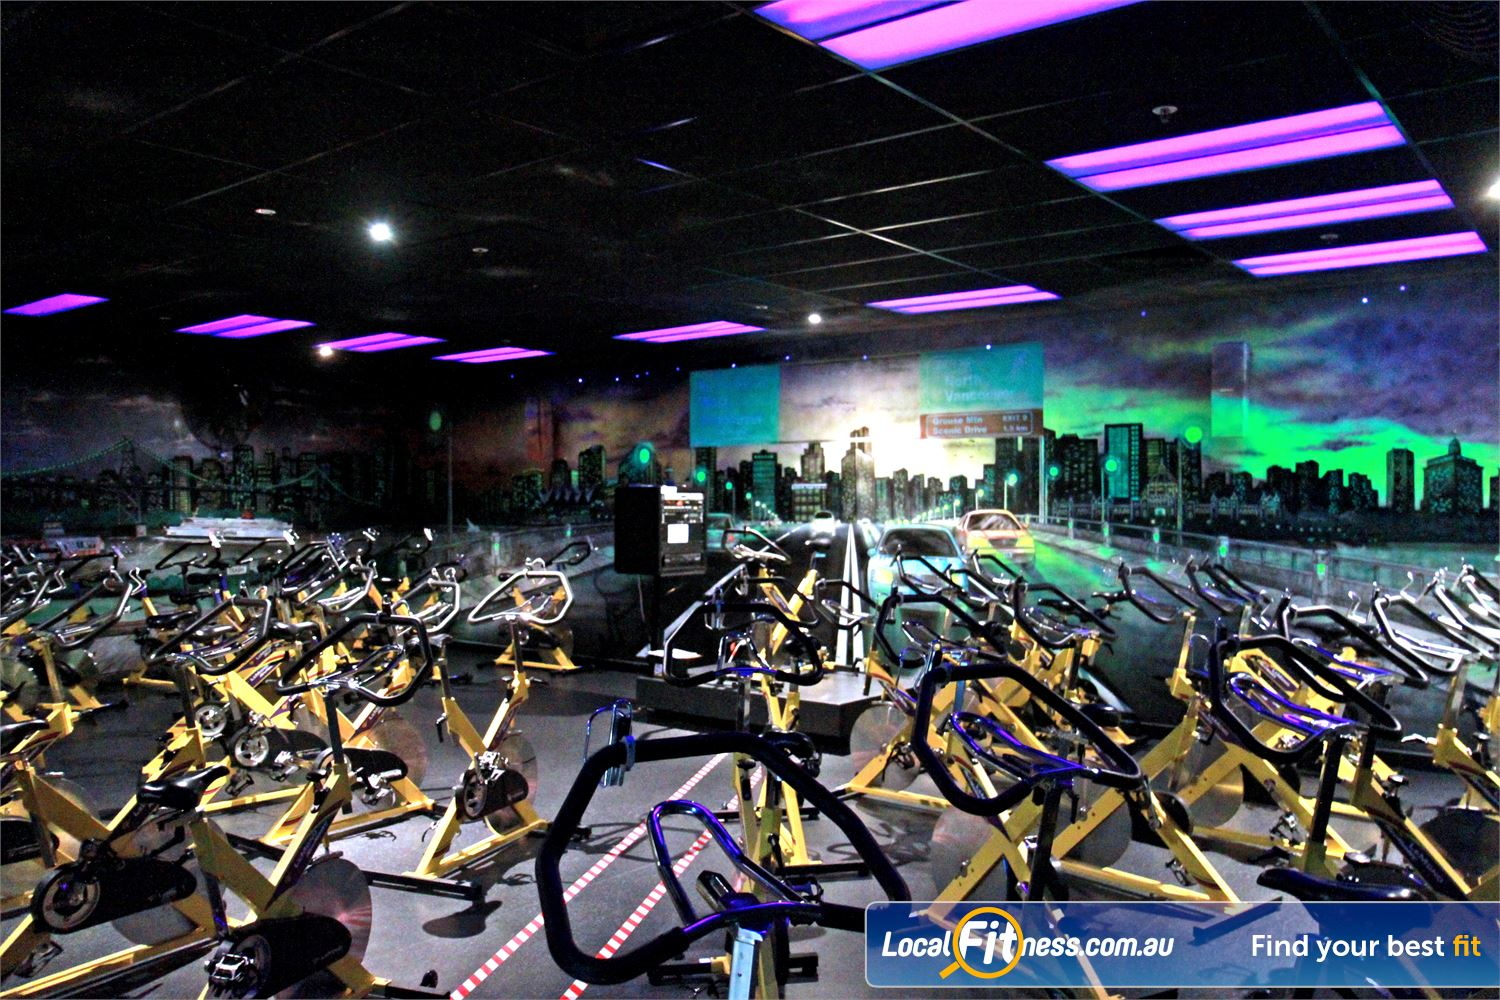 Goodlife Health Clubs Near Woodend Dedicated Ipswich spin cycle studio.